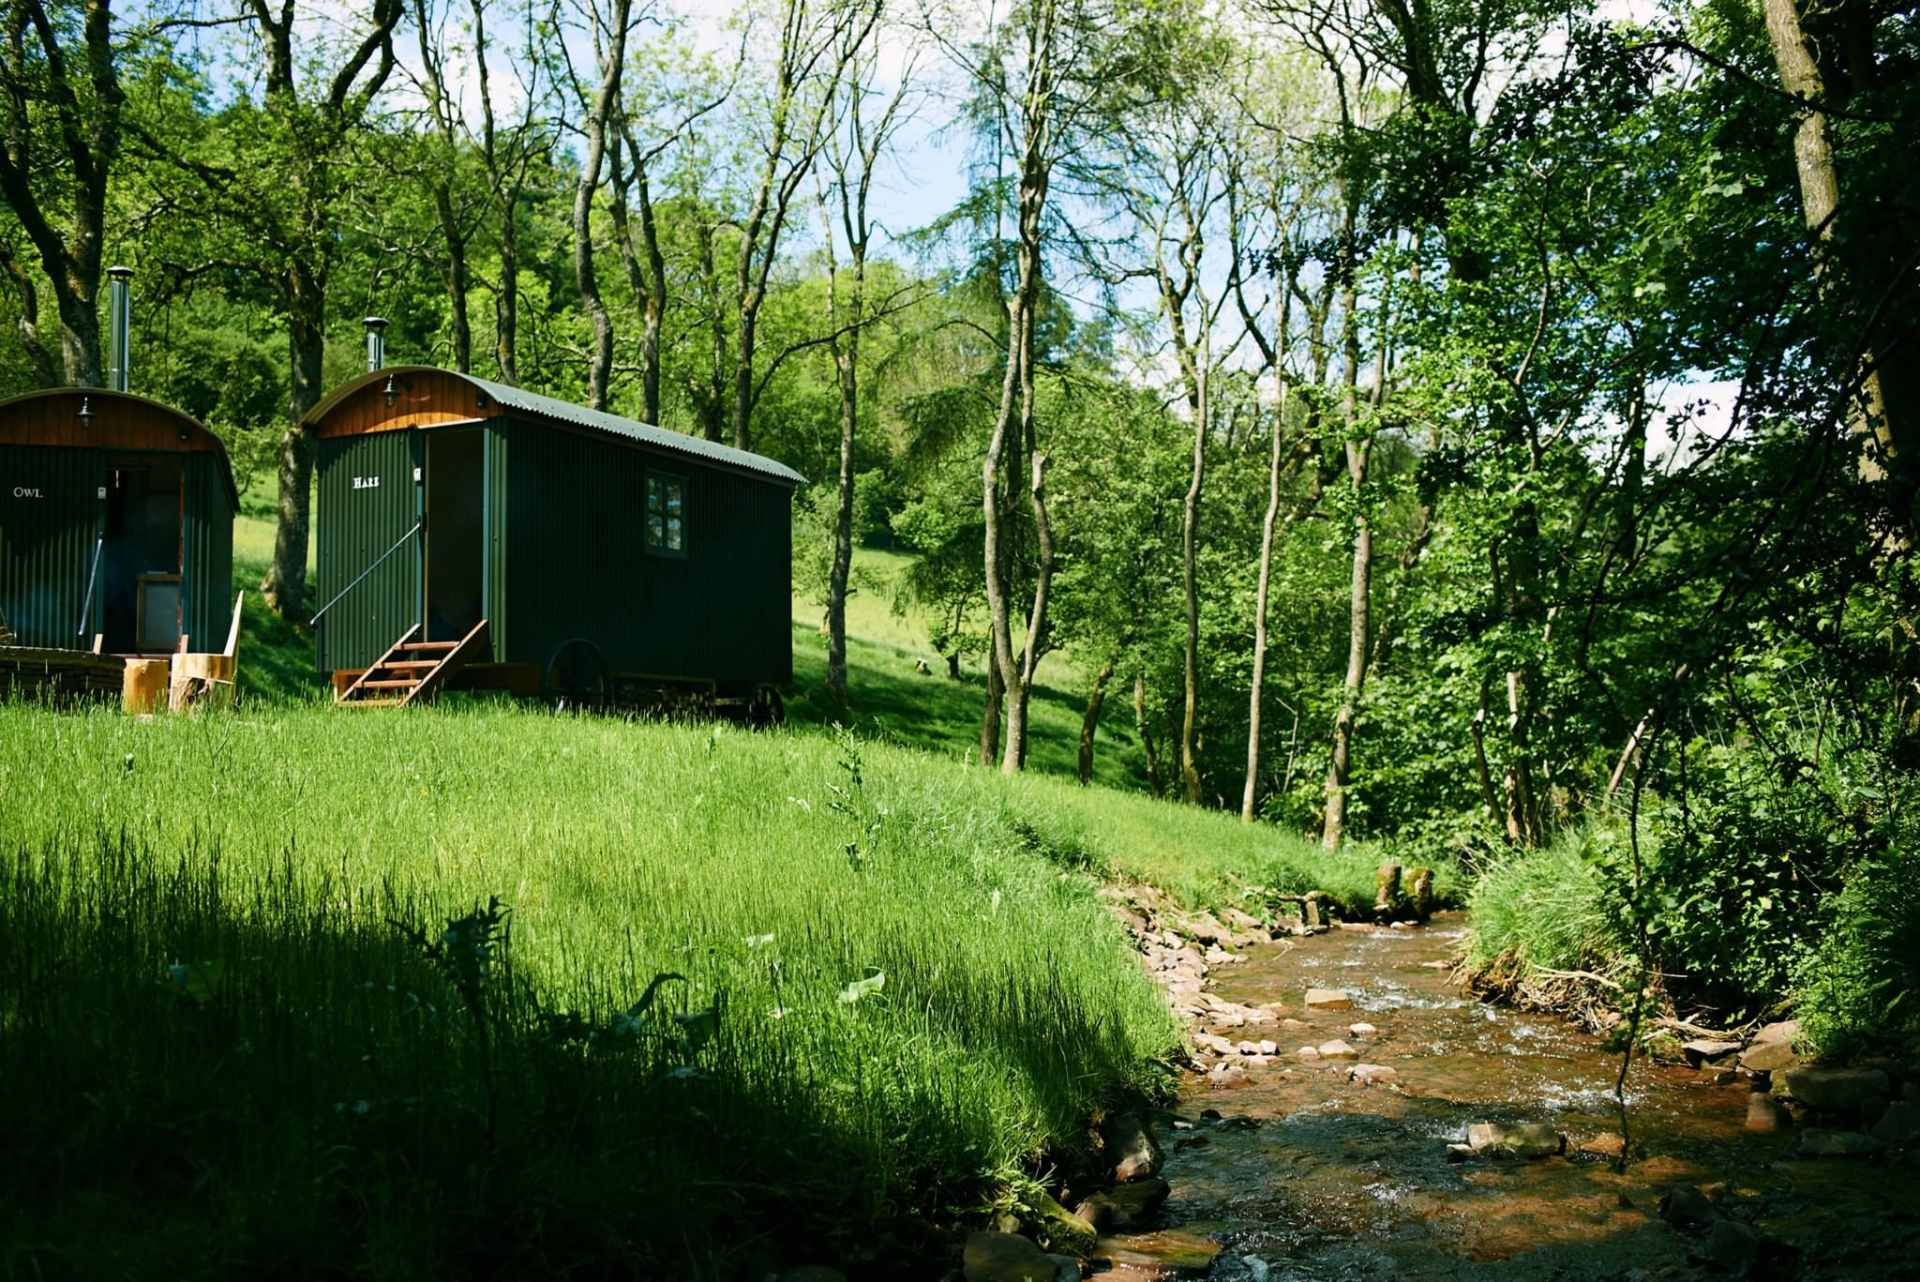 green-shepherds-huts-on-river-bank-in-forest-by-river-huts-in-the-hills